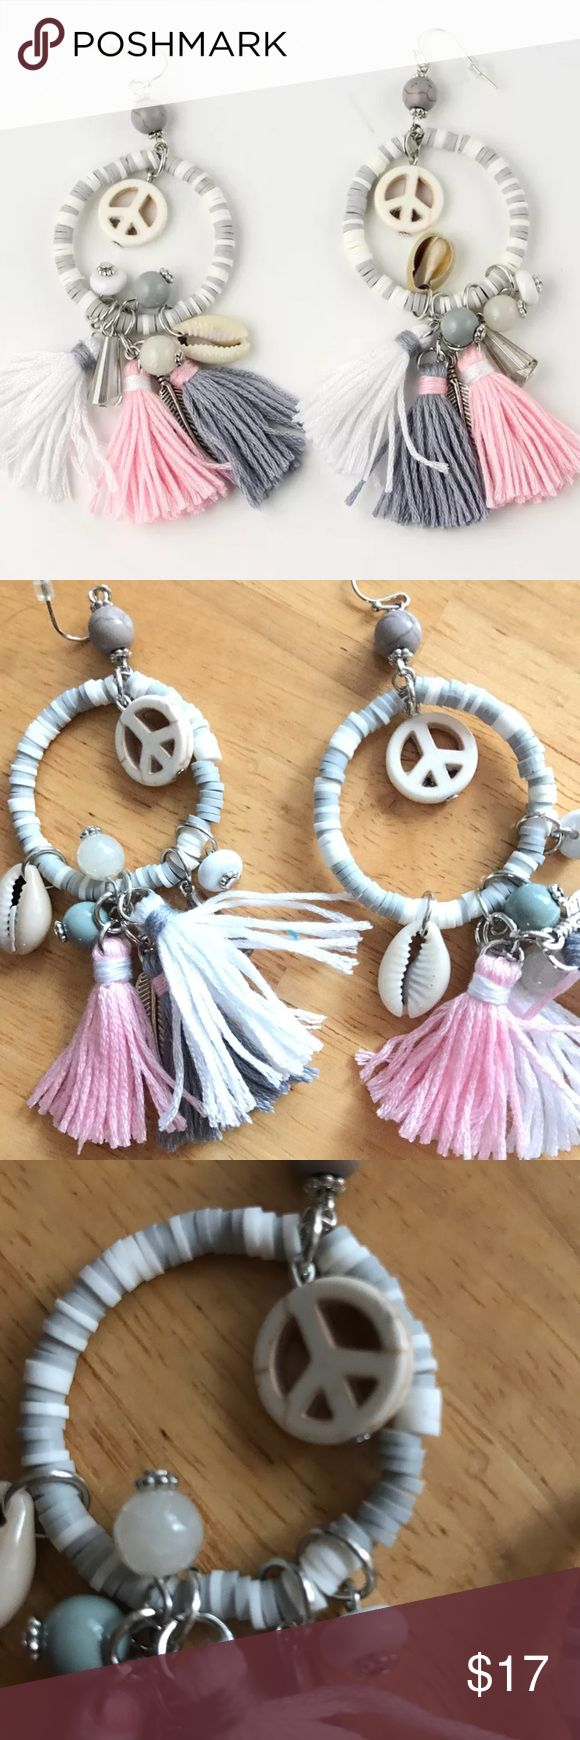 Bohemian Style Tassel Earrings Bohemian Style White pink Tassel Earrings   Beautiful details with sea shell, peace sign pink gray white tassels, earrings are not to heavy so pretty😍 Material : Alloy Chain +resin Size: the length is about 19.7''  bib statement Wide:1.58''  stretch chain:3.16''. NWOT    🛍BUNDLE & SAVE 15%🛍 ✨TOP RATED SELLER✨ 📦SAME DAY OR NEXT DAY SHIPPING!📦 ❤REASONABLE OFFERS WELCOME❤ ❌NO TRADES OR PAYPAL❌ Jewelry Earrings